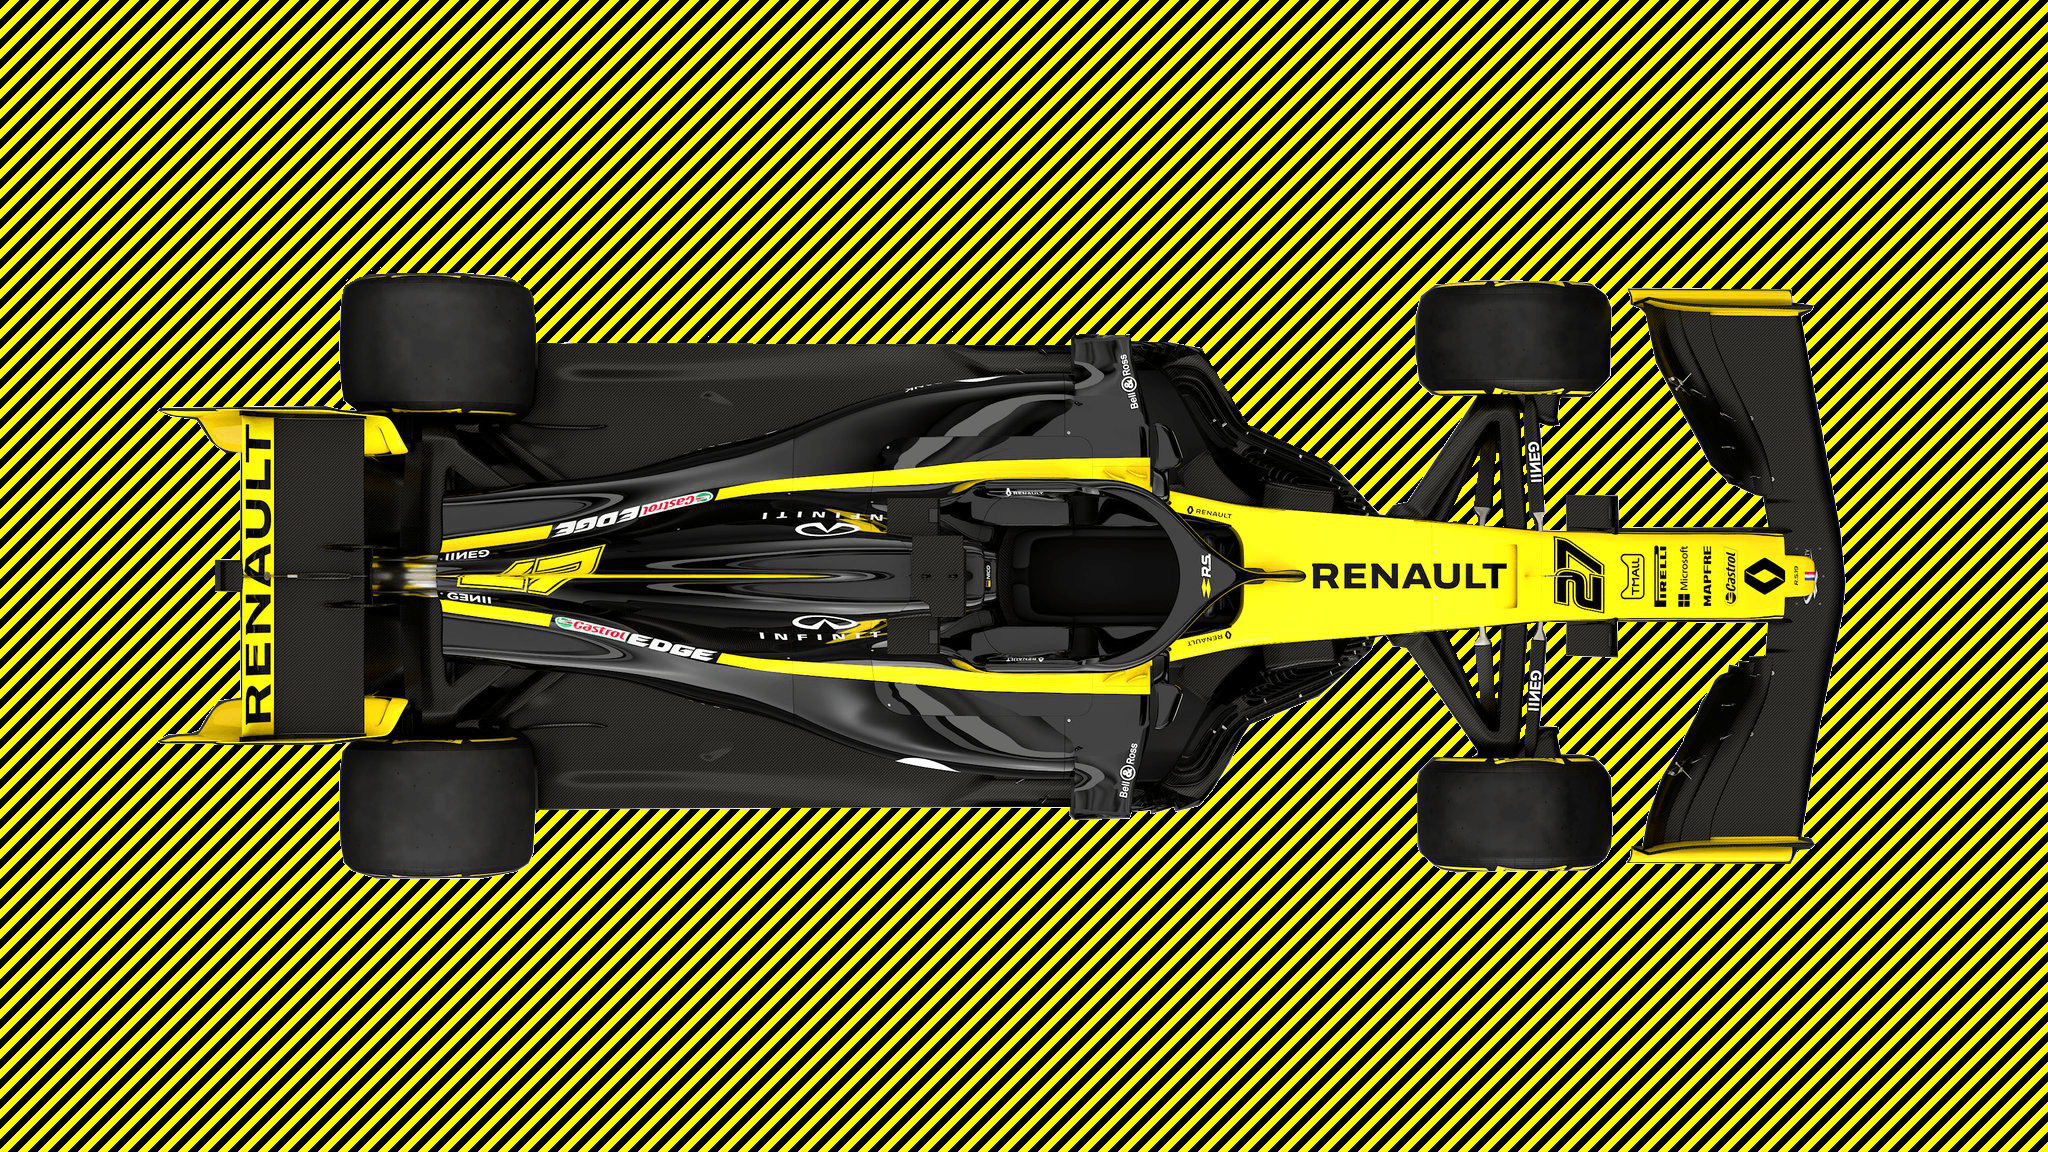 Quick edit of Renault R.S. 19 for a wallpapers